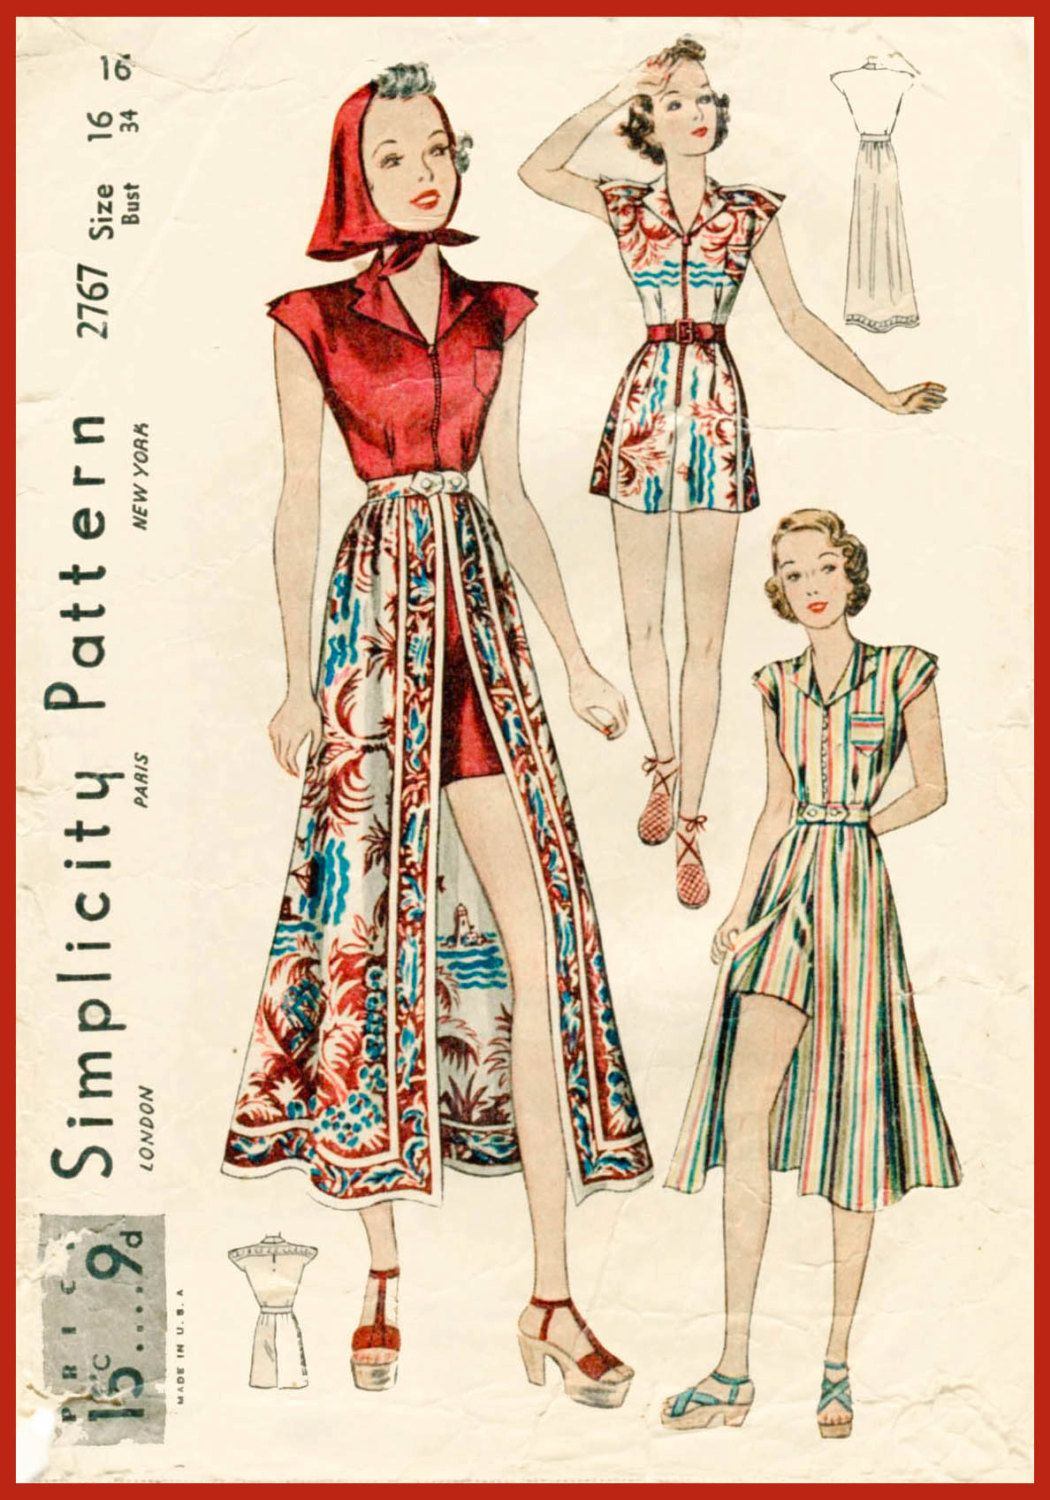 f277854360a 1930s 30s vintage sewing pattern playsuit skirt beach romper ...